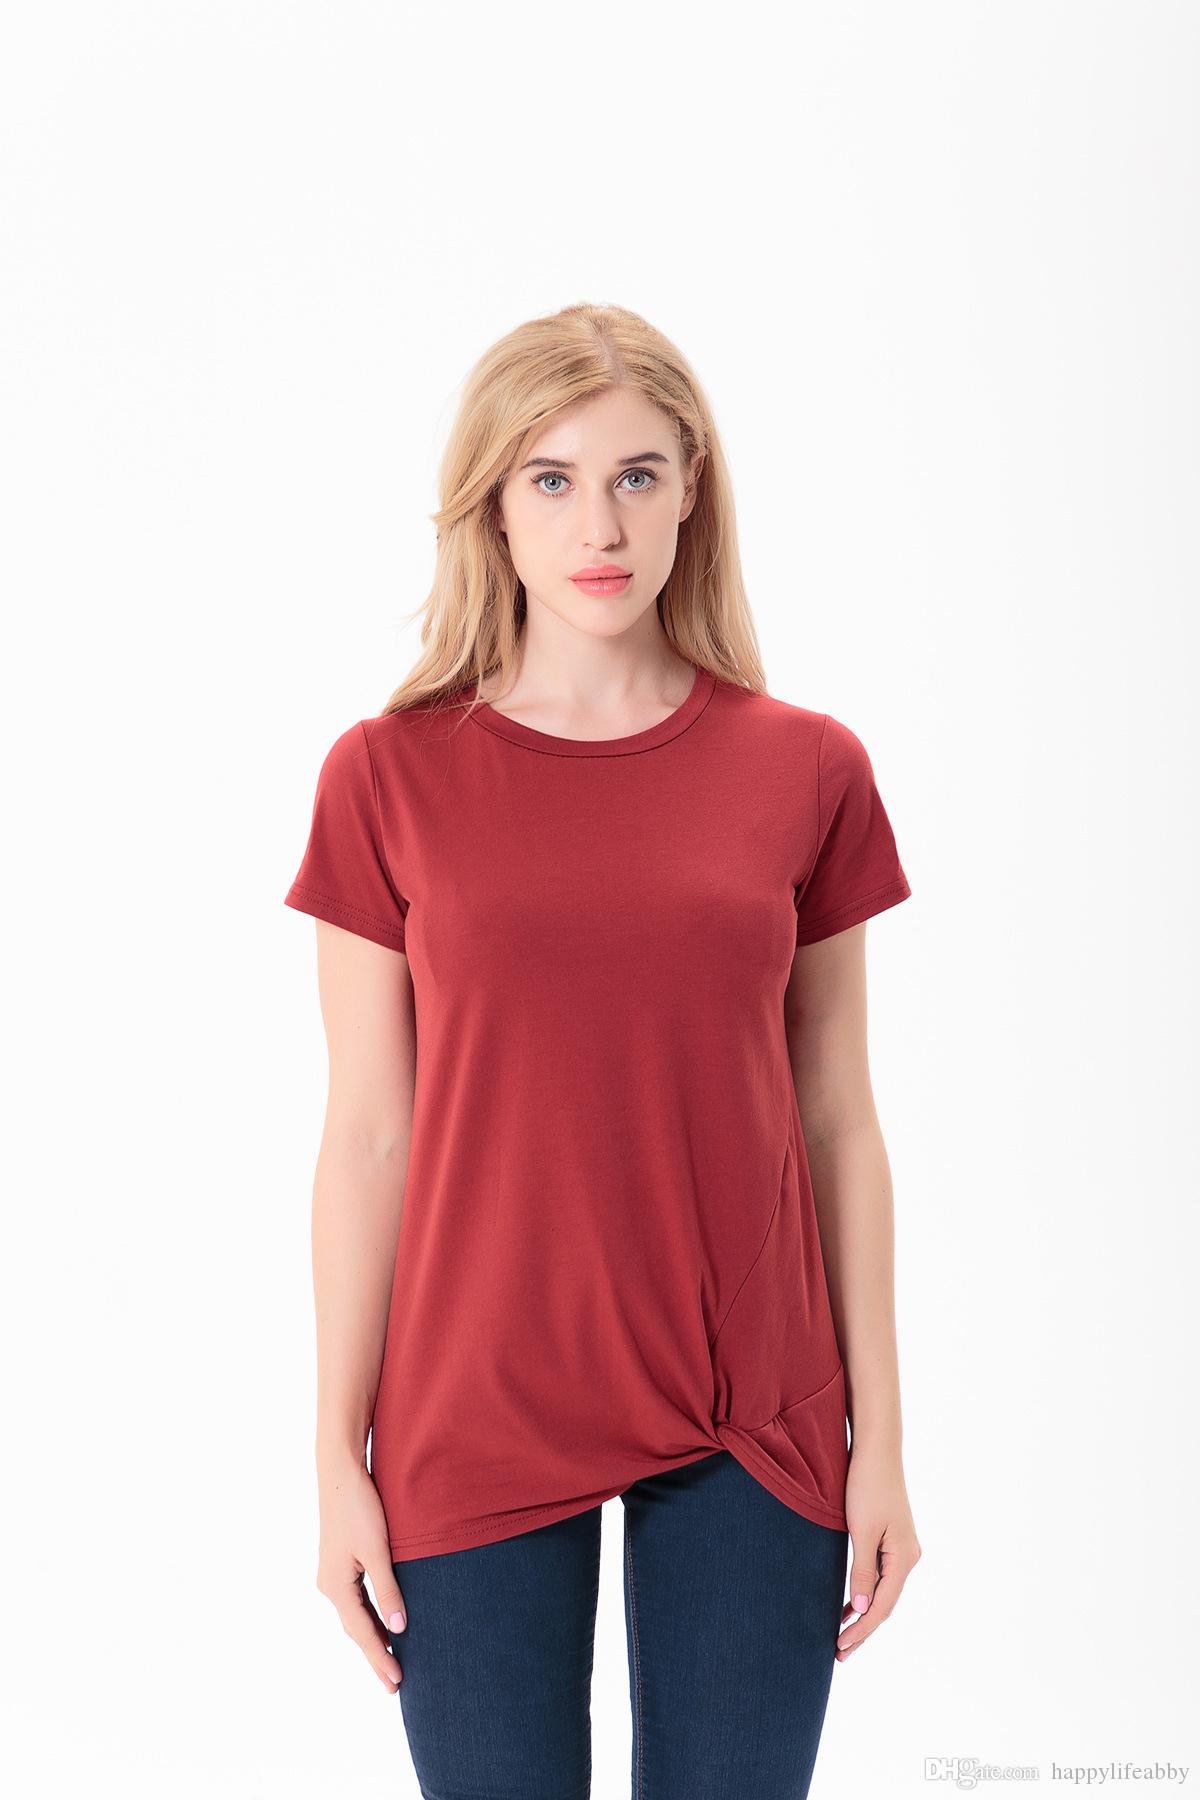 spring summer Women knot t-shirts o neck solid color loose casual bow shirts plain top tank